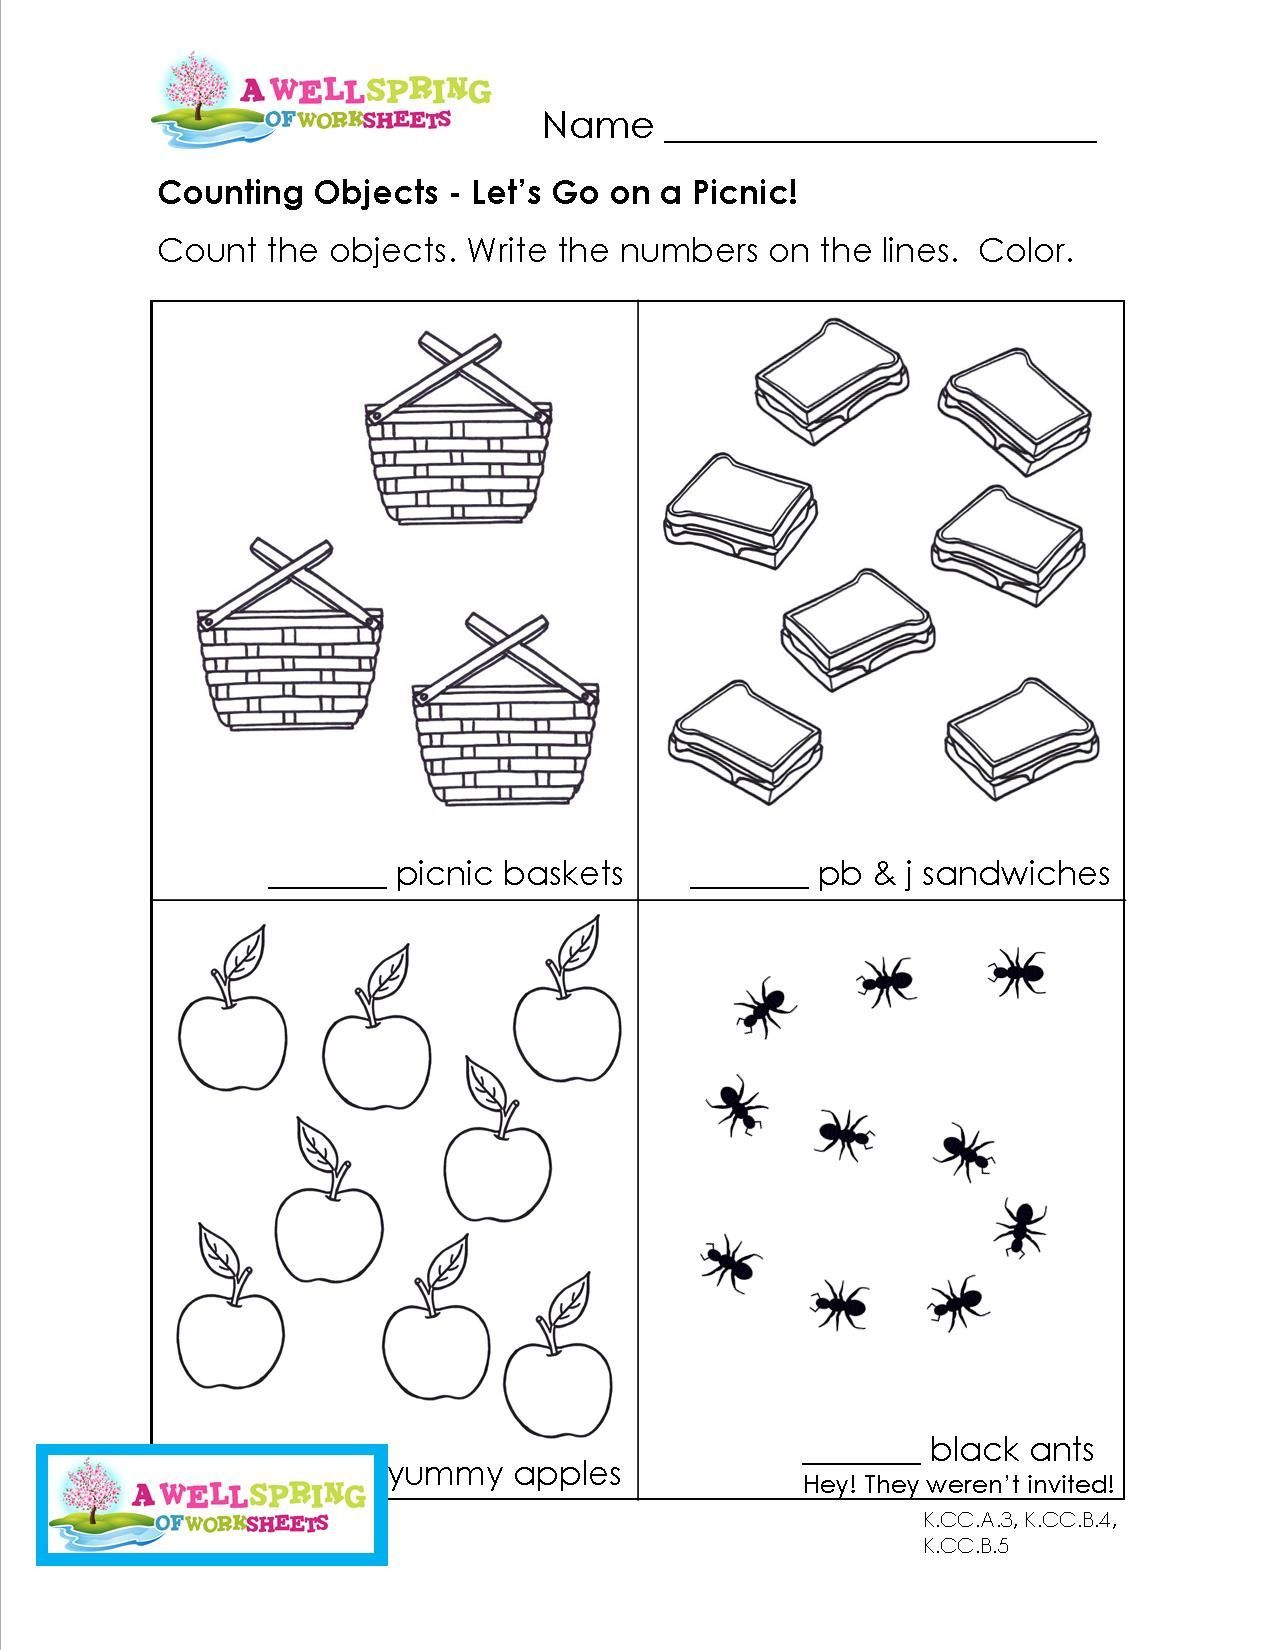 Math Counting Objects Worksheets Kindergarten 240632 Myscres Kindergarten Worksheets Free Kindergarten Worksheets Counting Worksheets For Kindergarten [ 1650 x 1275 Pixel ]